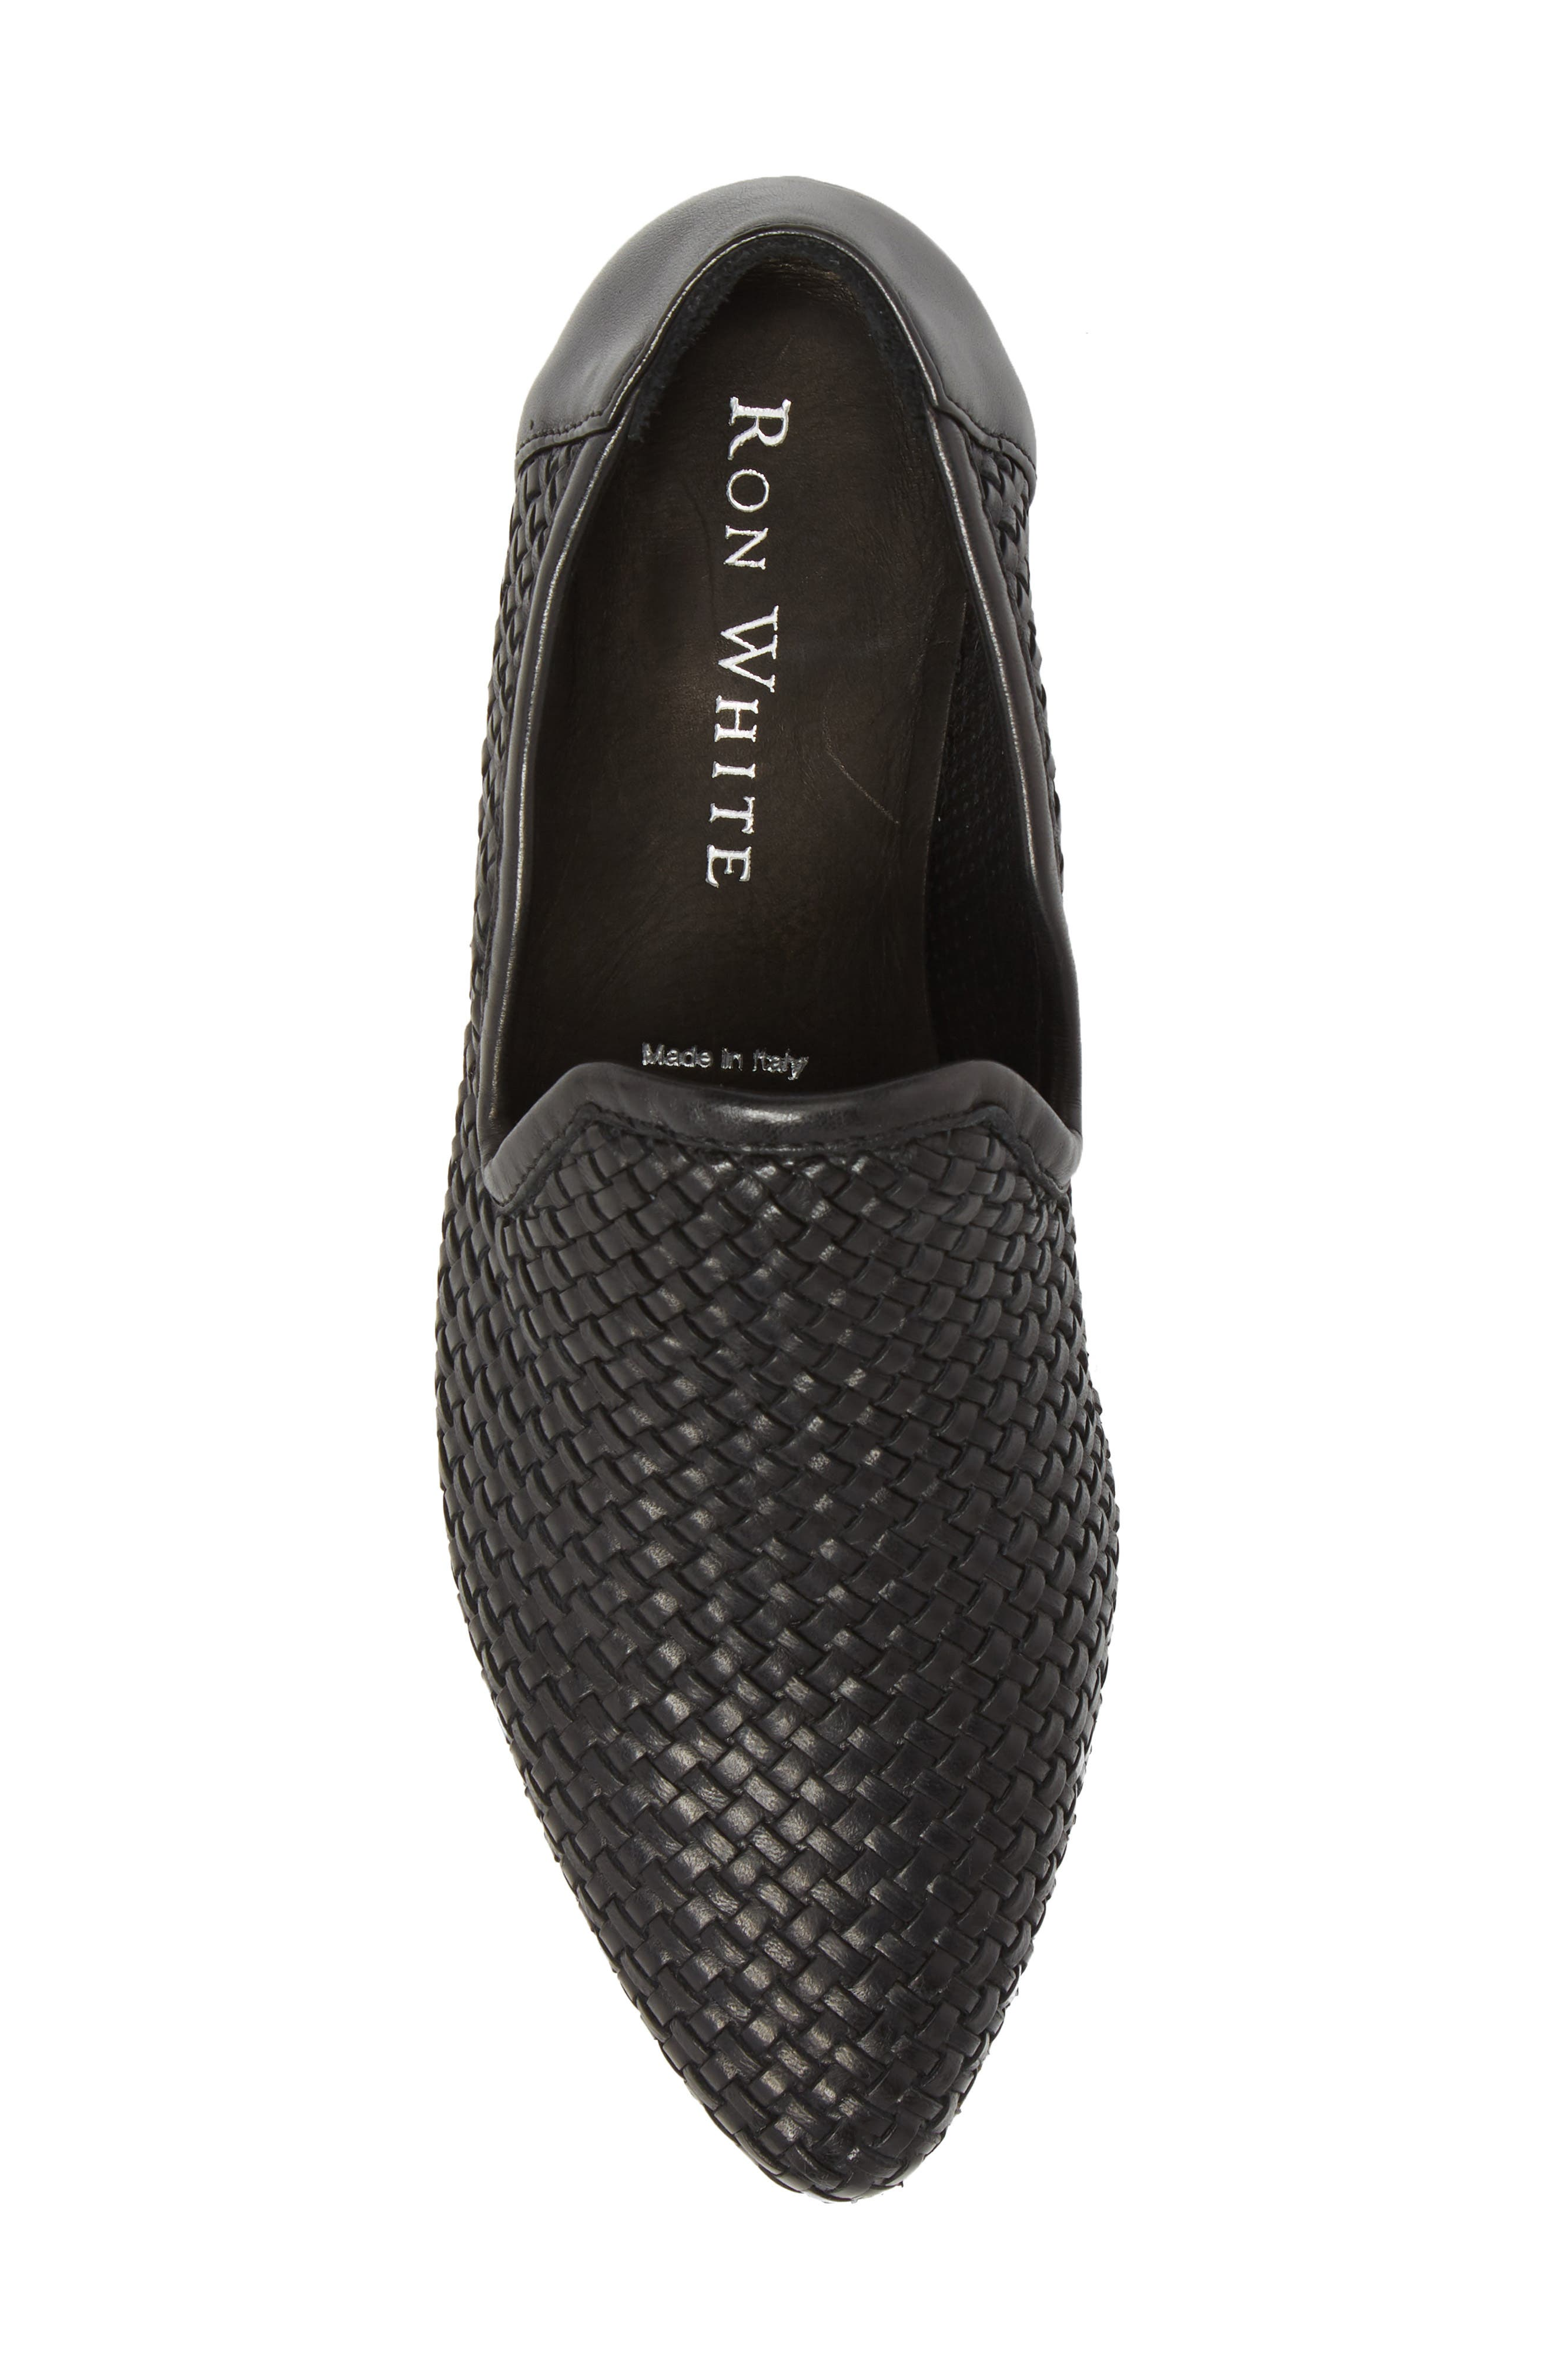 Yara Woven Slip-On Loafer,                             Alternate thumbnail 5, color,                             Onyx Leather